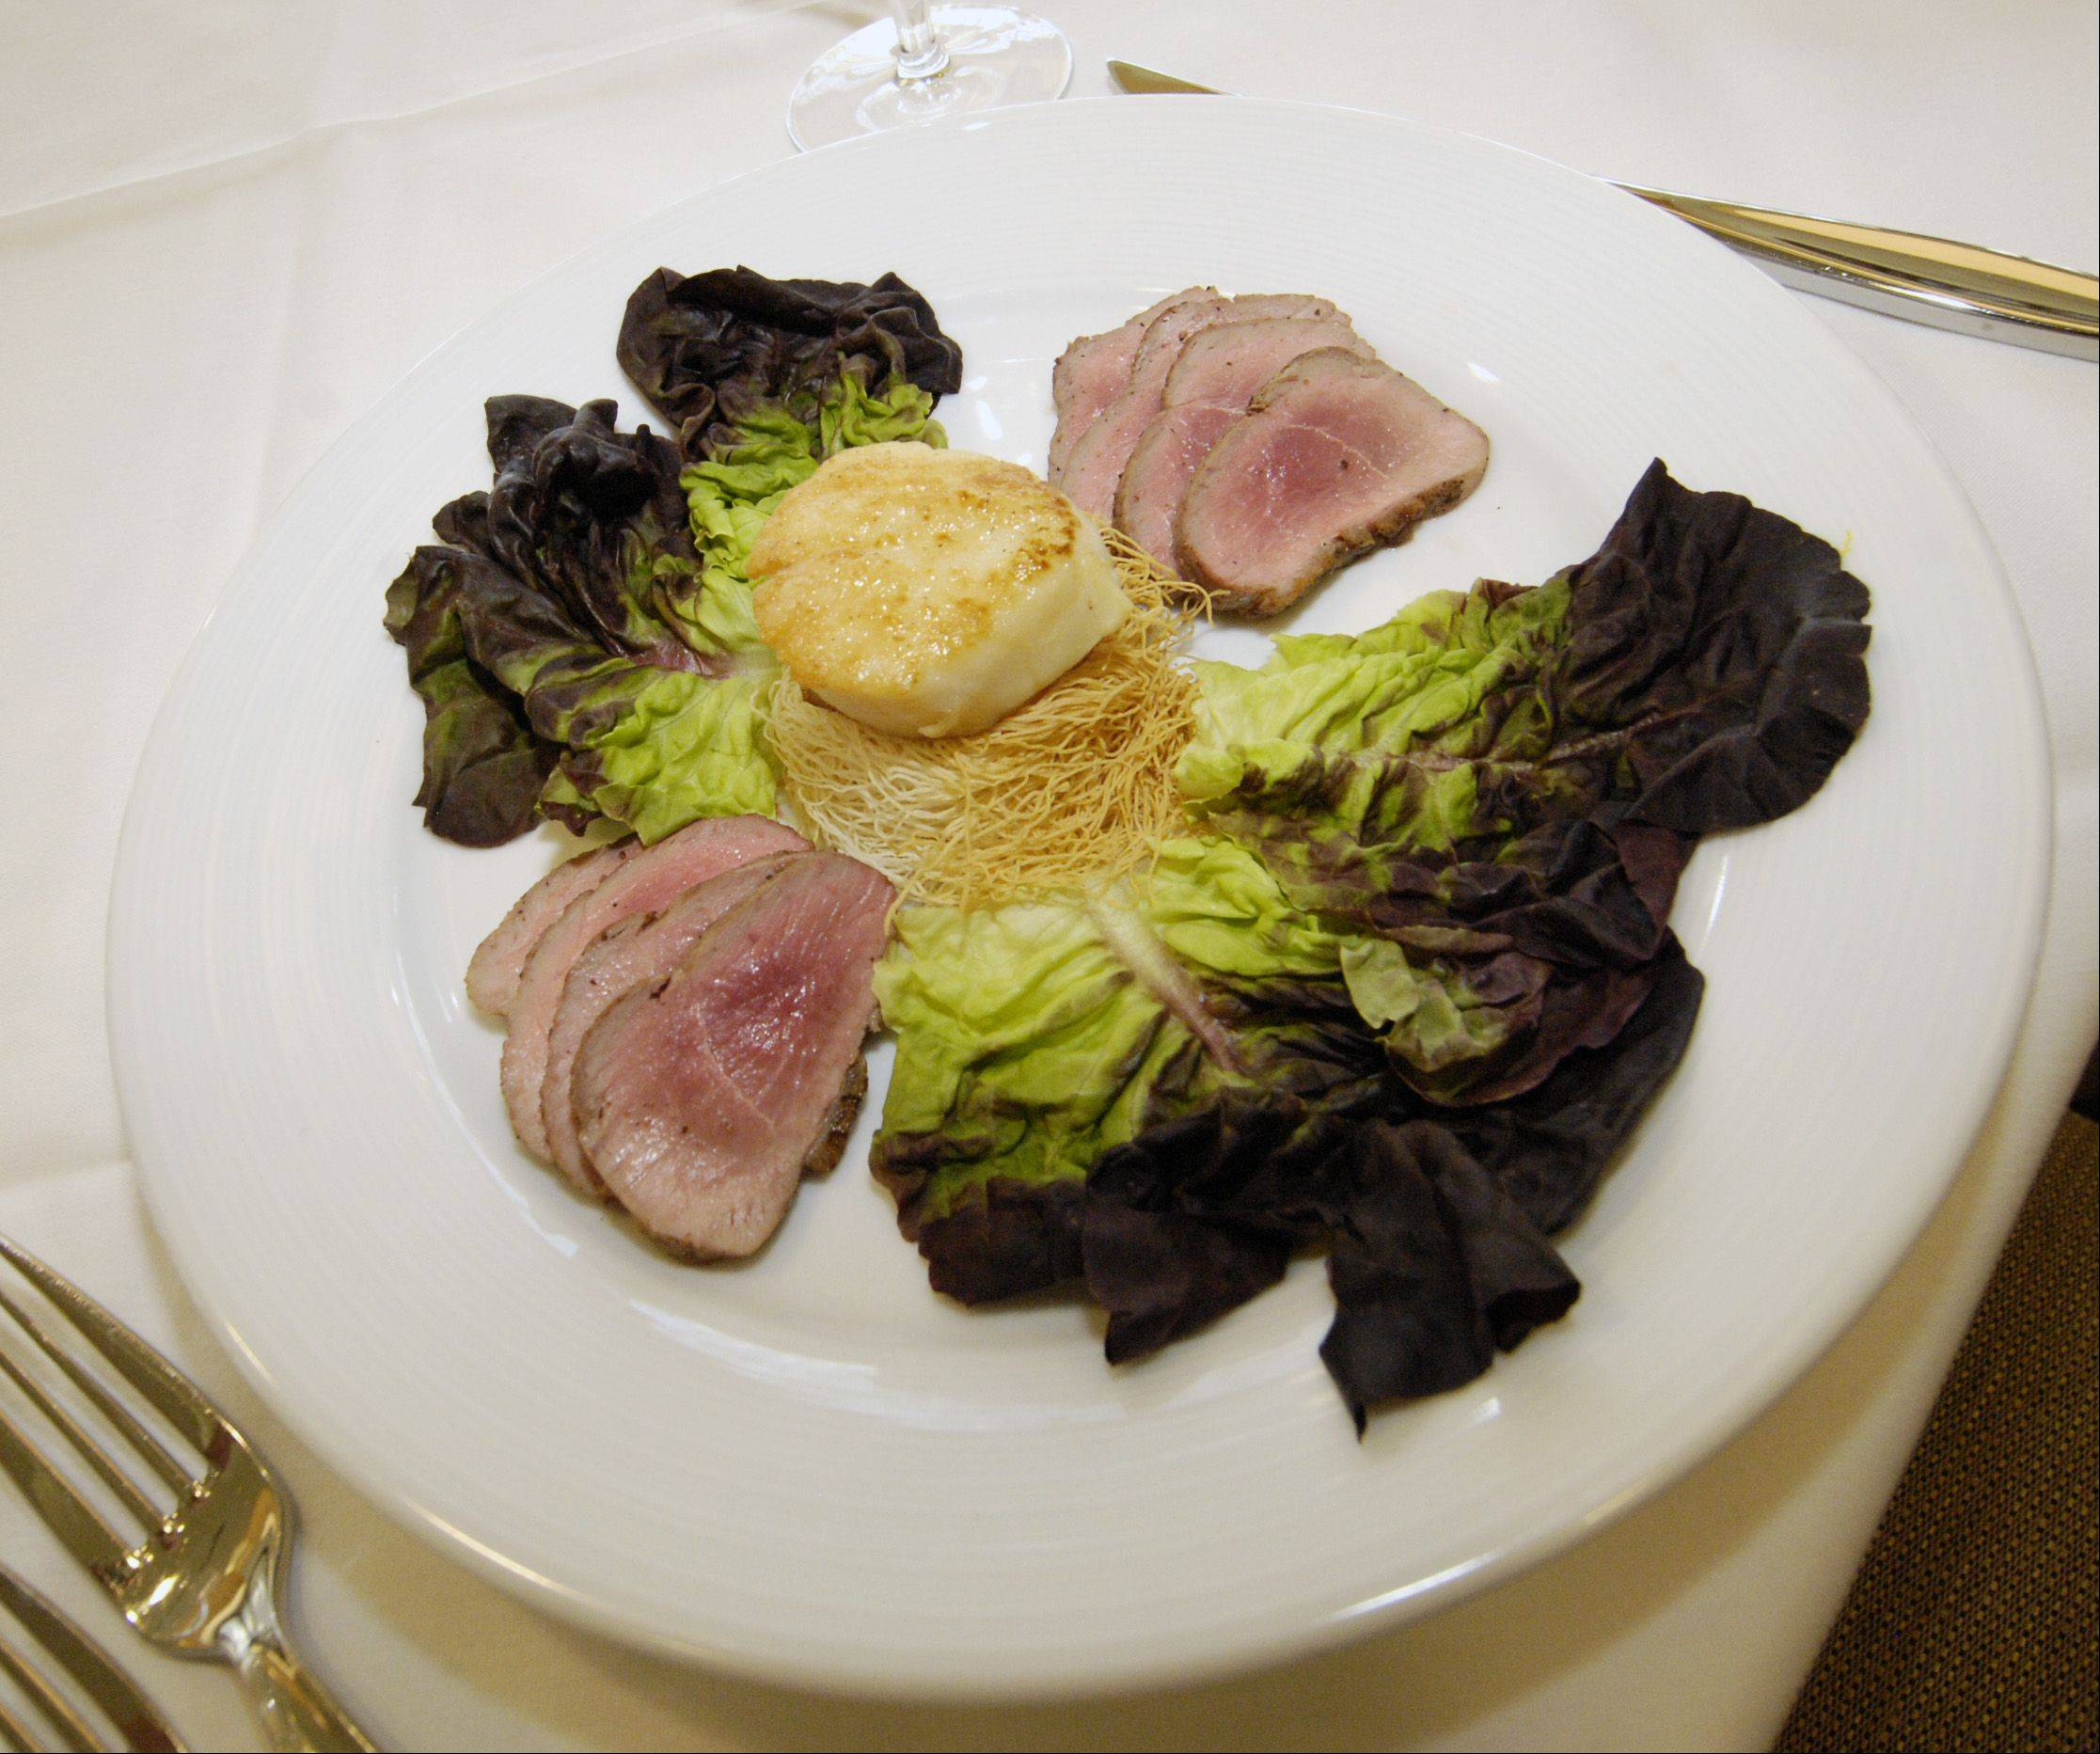 Duck and scallop combine for a pleasing salad at Waterleaf restaurant at the College of DuPage culinary center.